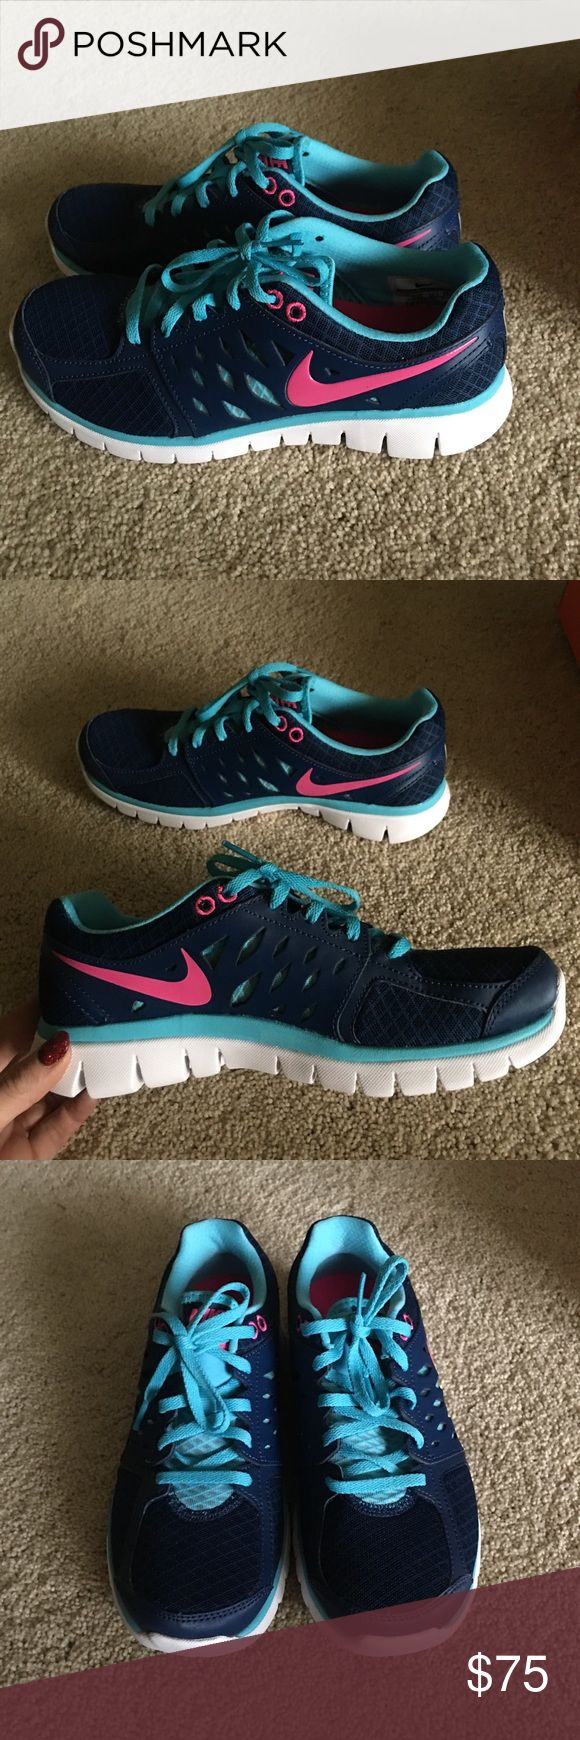 New Nike flex navy, blue and pink shoes 7.5 Brand new Nike flex run blue and pink tennis athletic shoes in 7.5. Nike Shoes Athletic Shoes